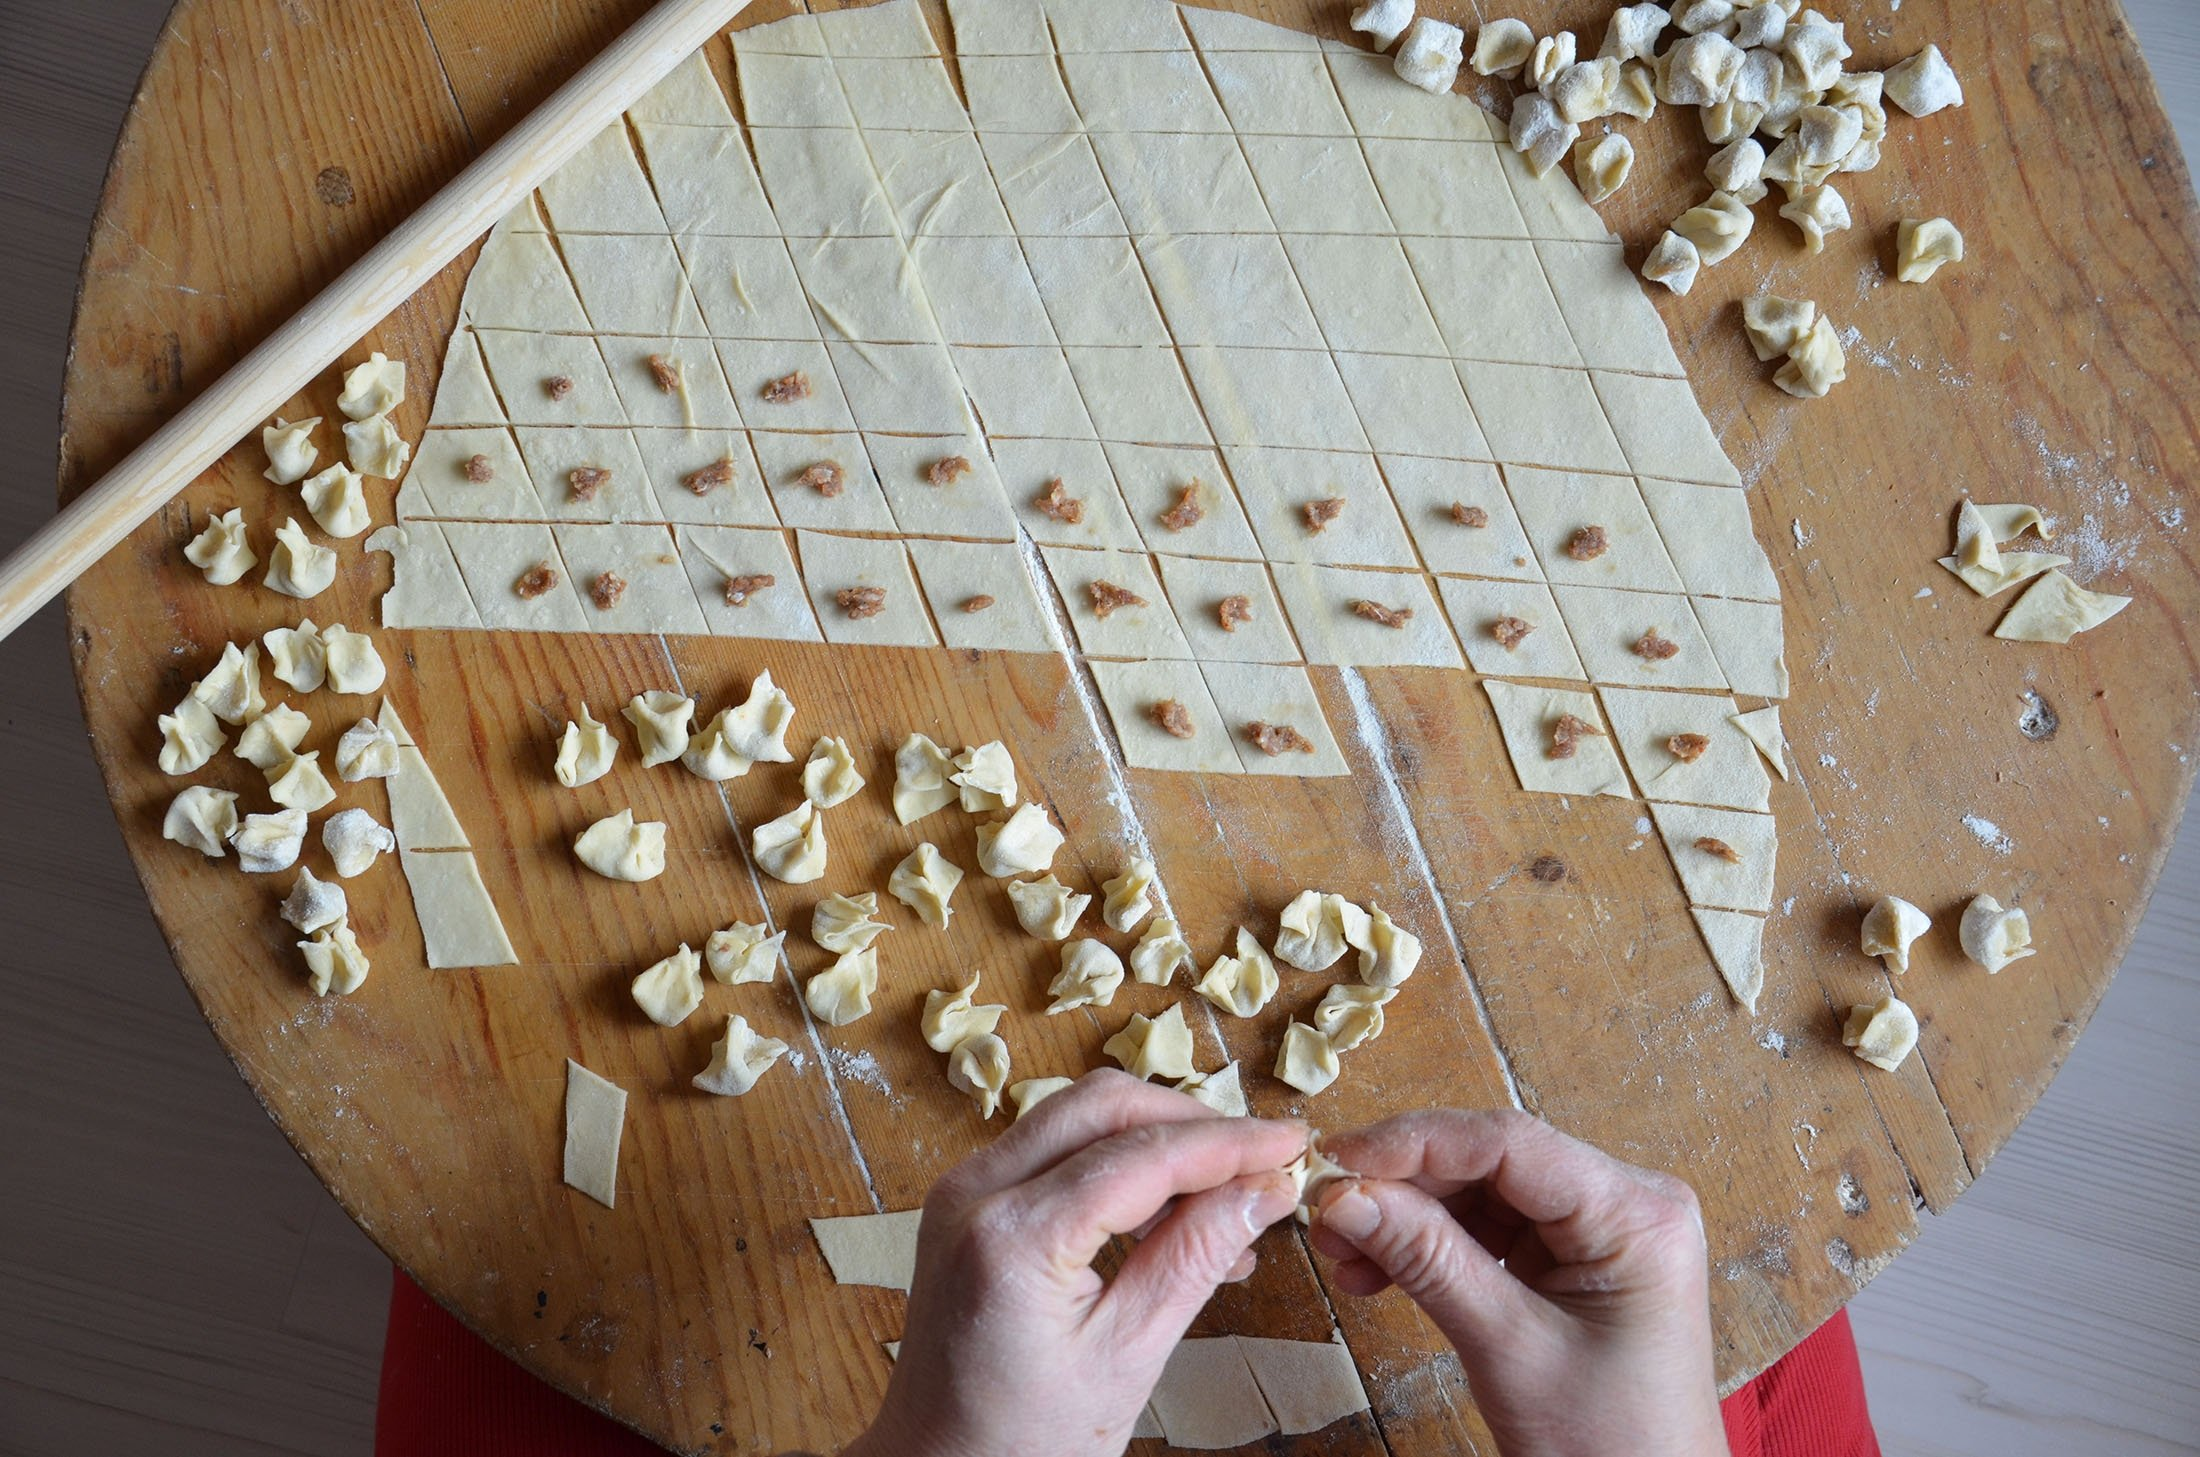 The key to making proper mantı is to keep the filling to a minimum and the pasta squares tiny. (Shutterstock Photo)